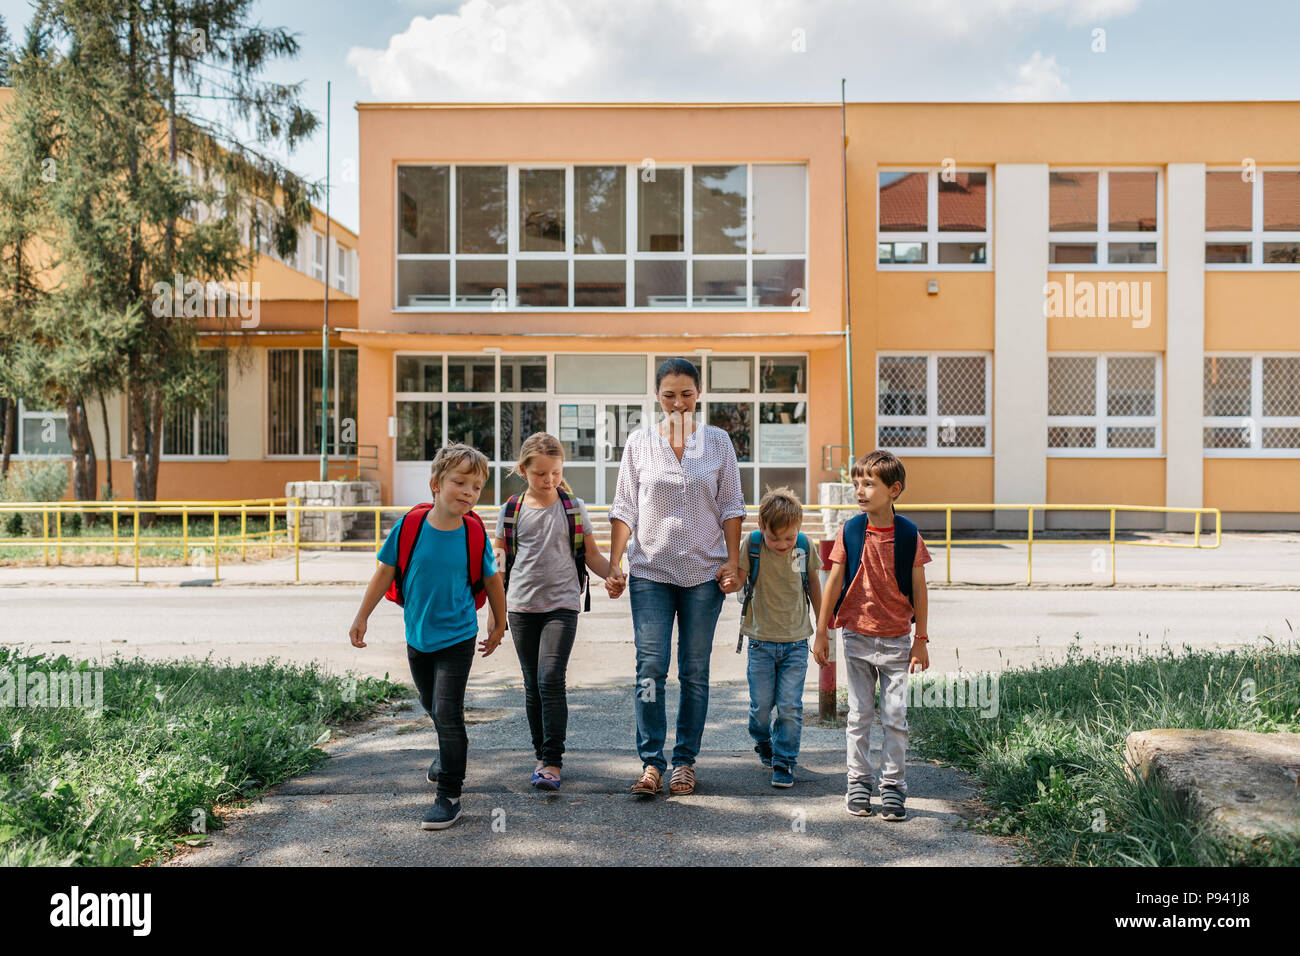 Children going home from school and talking to their mother. Young students walking away from school accompanied by a parent. - Stock Image